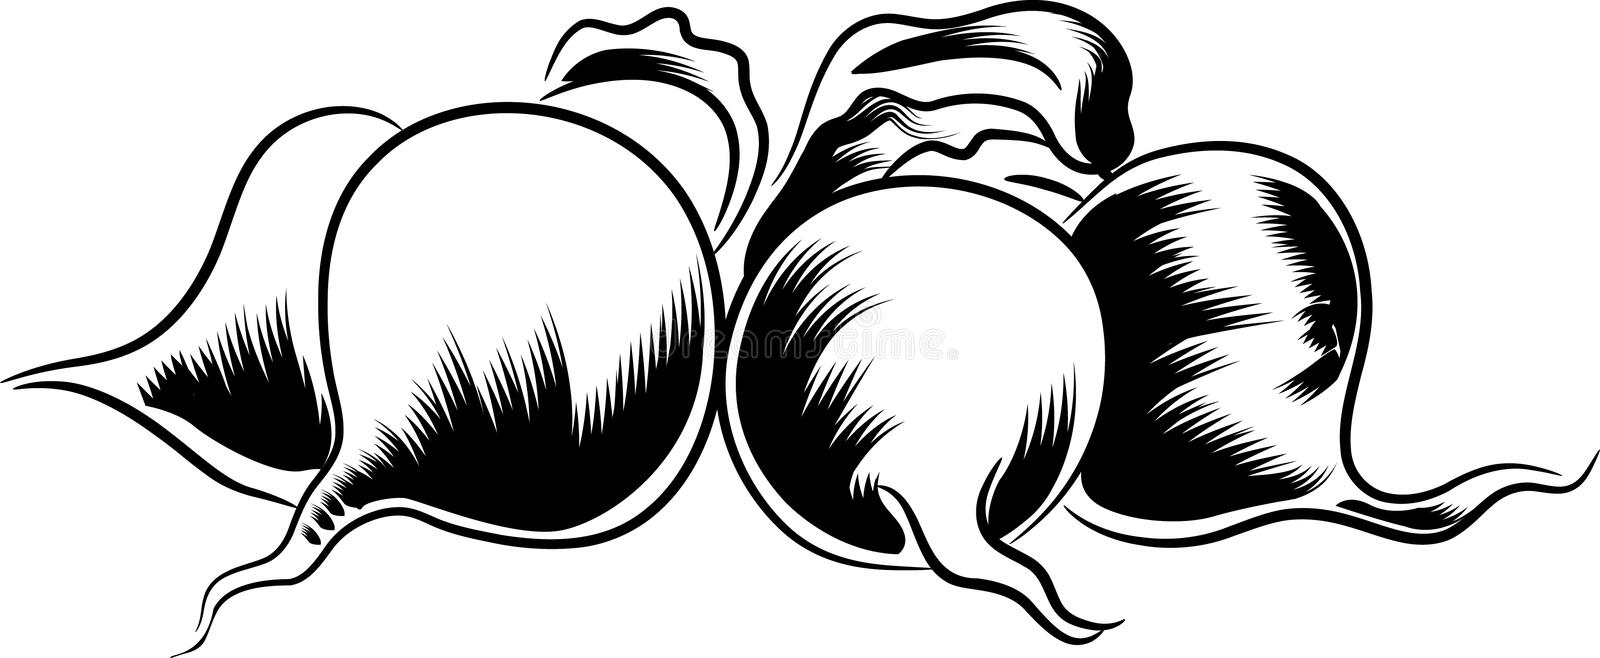 Beetroots. The beetroots clip art on white background royalty free illustration